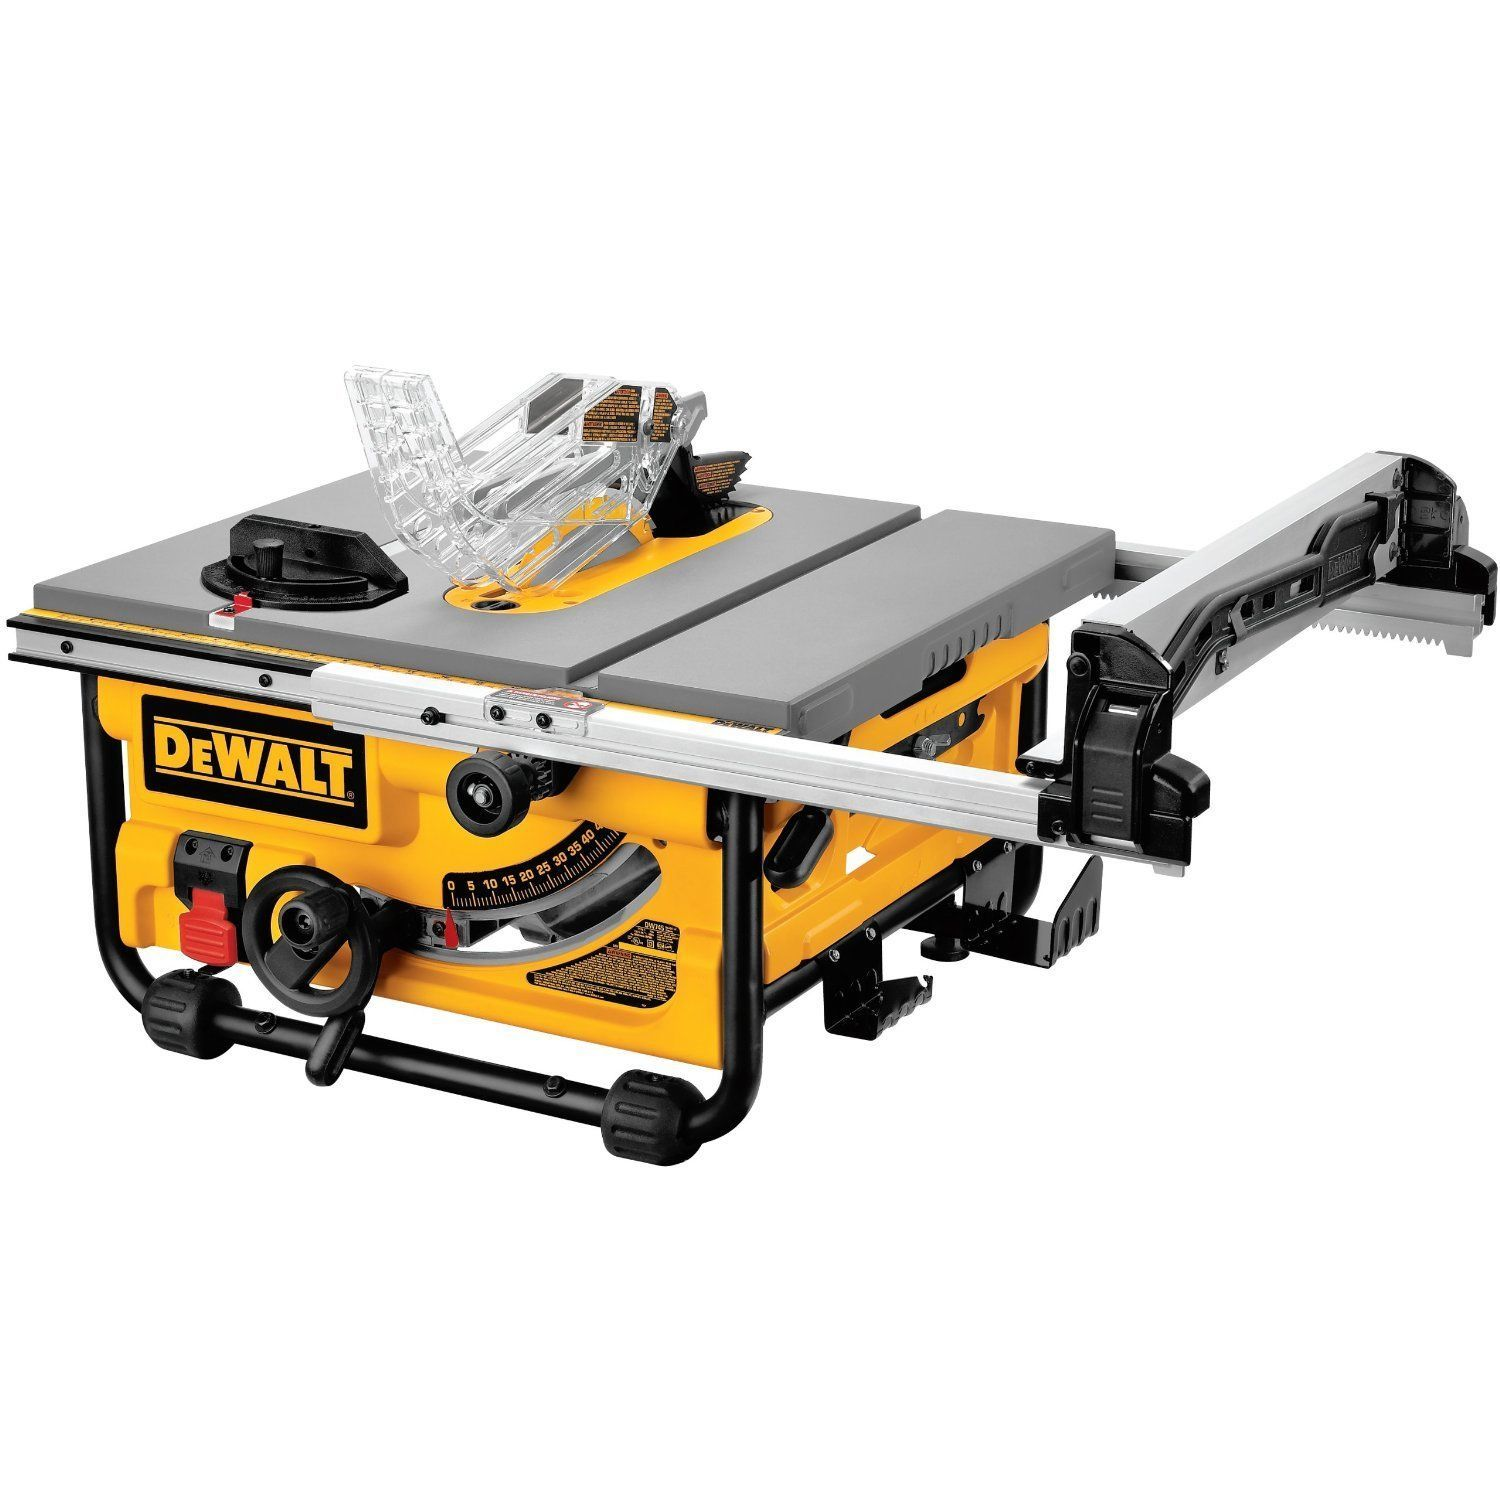 Dewalt Table Saw 10 Inch Compact Job Site 20 Inch Rip Capacity 120Volt Power New